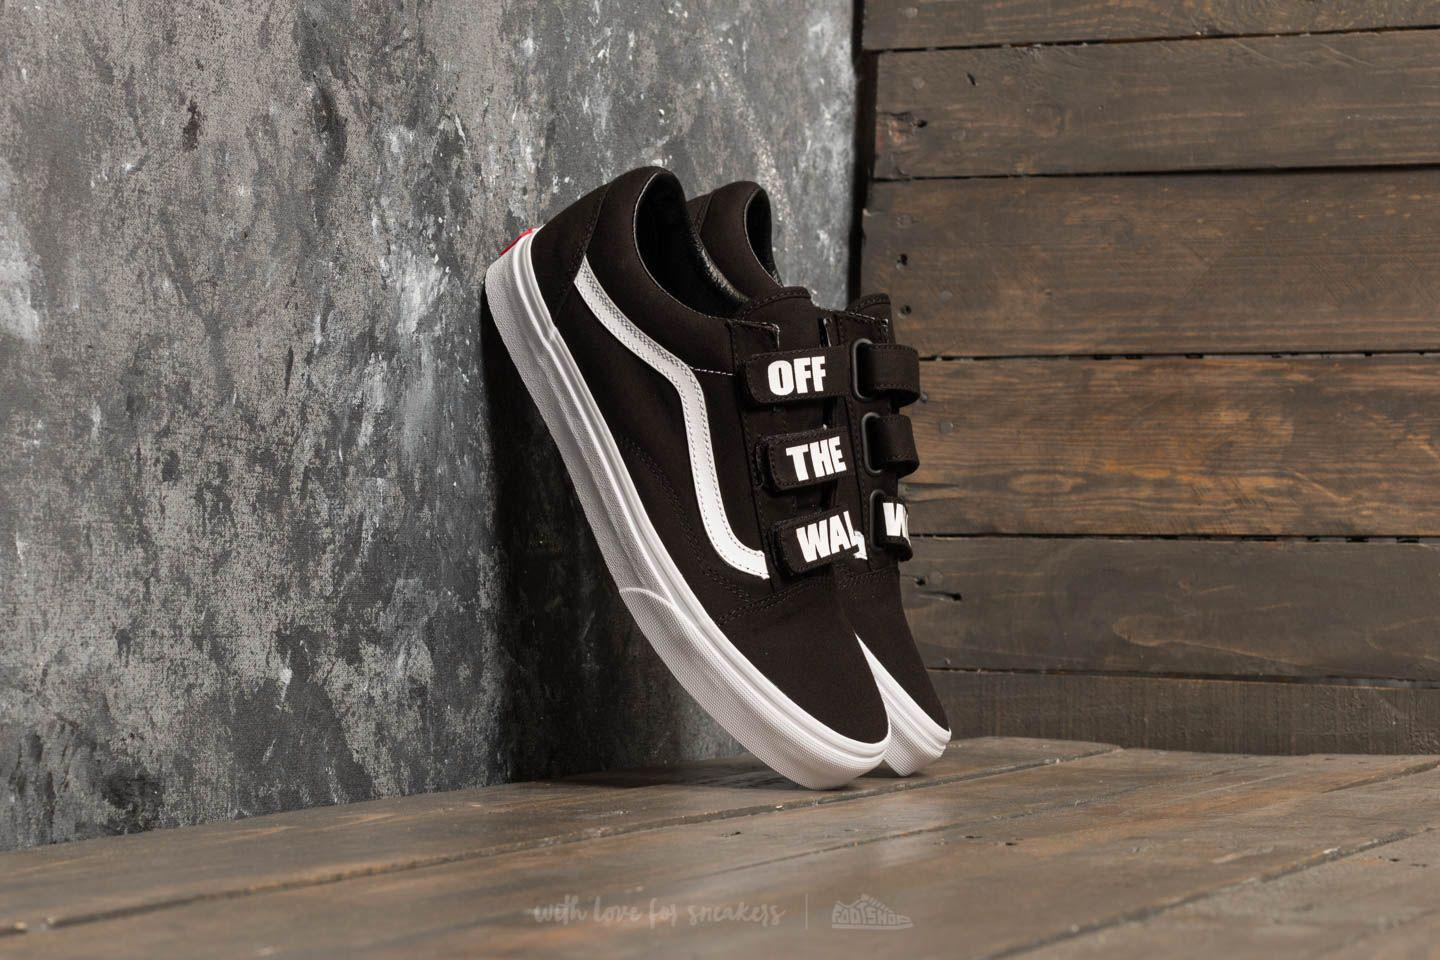 8d2fc9f870e Lyst - Vans Old Skool V (off The Wall) Black  True White in Black ...